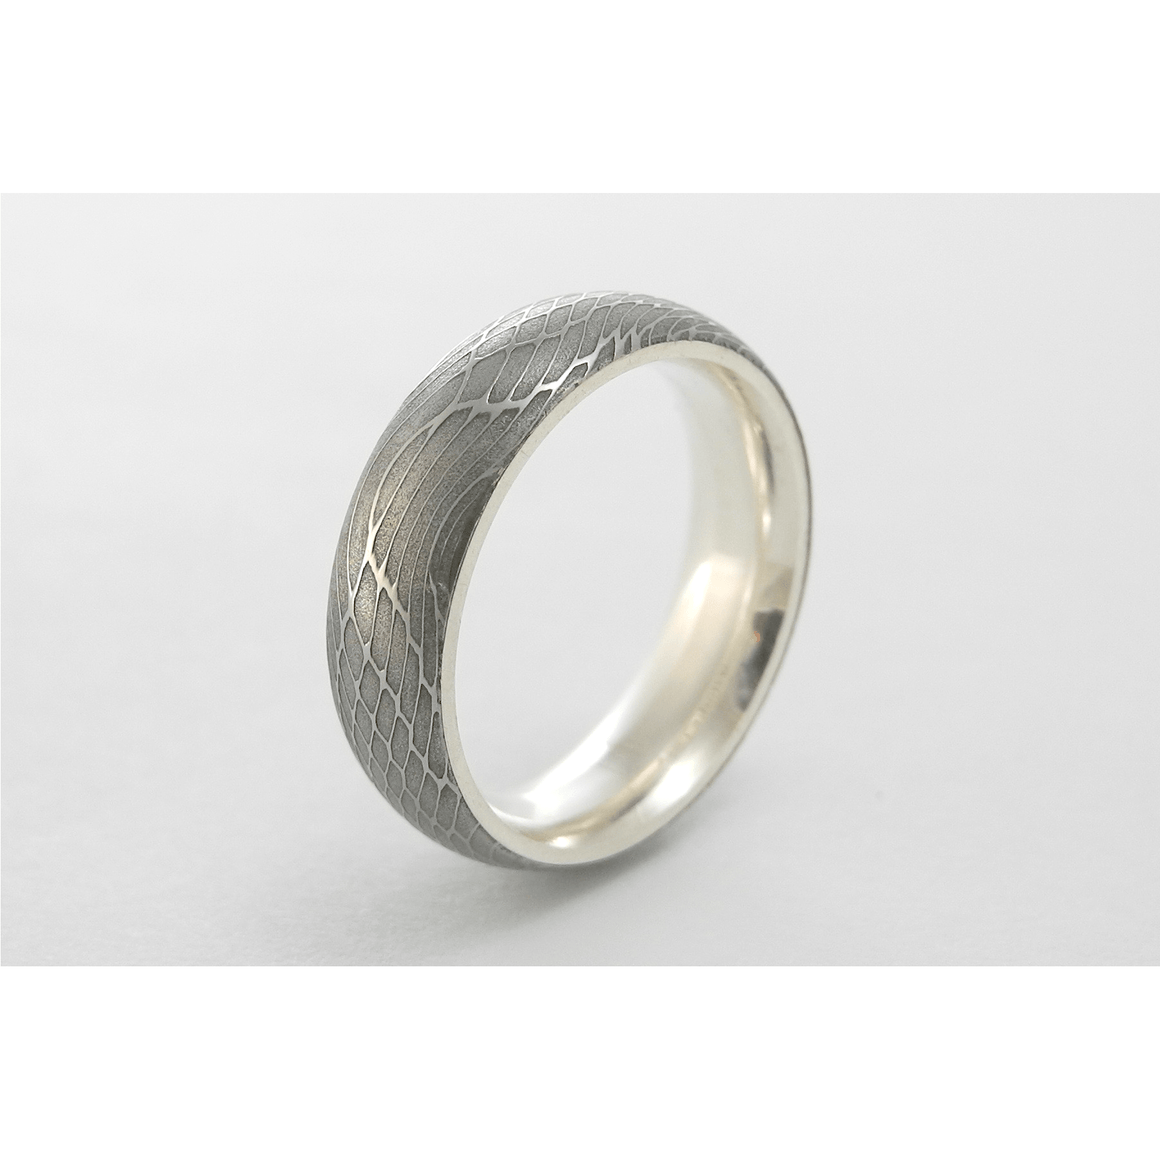 Spider Silk Stainless Damascus Steel Ring with Silver Interior